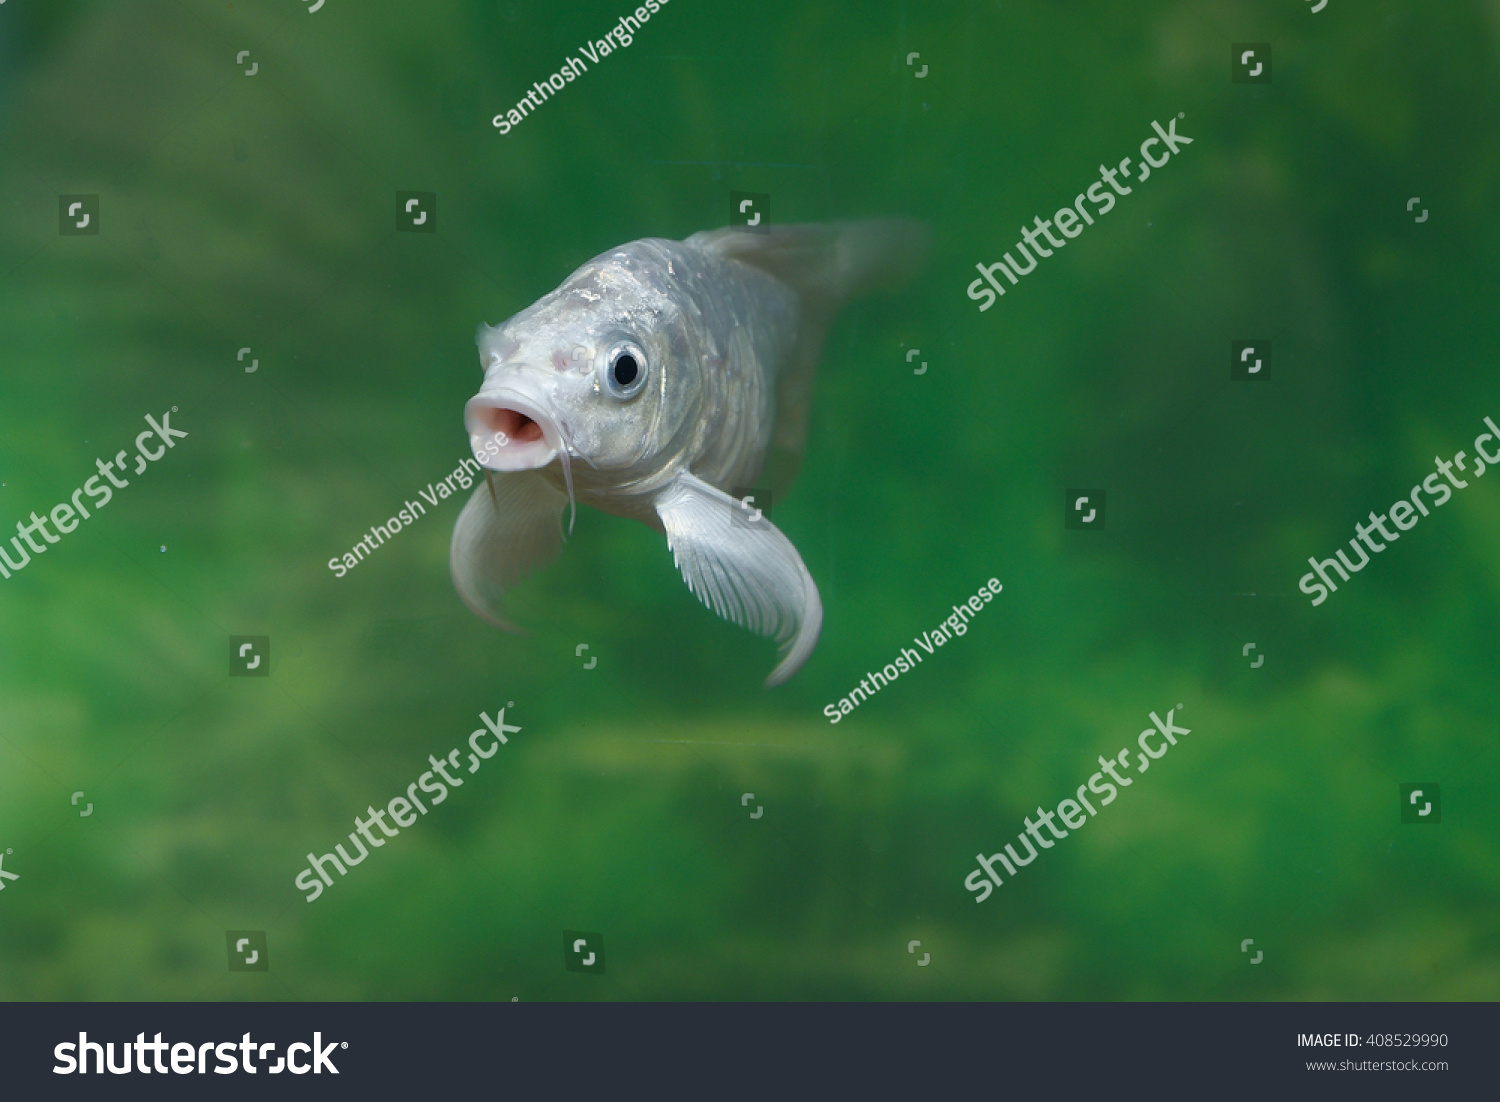 White Ornamental Fish Aquarium Chineese Carp Stock Photo (Royalty ...